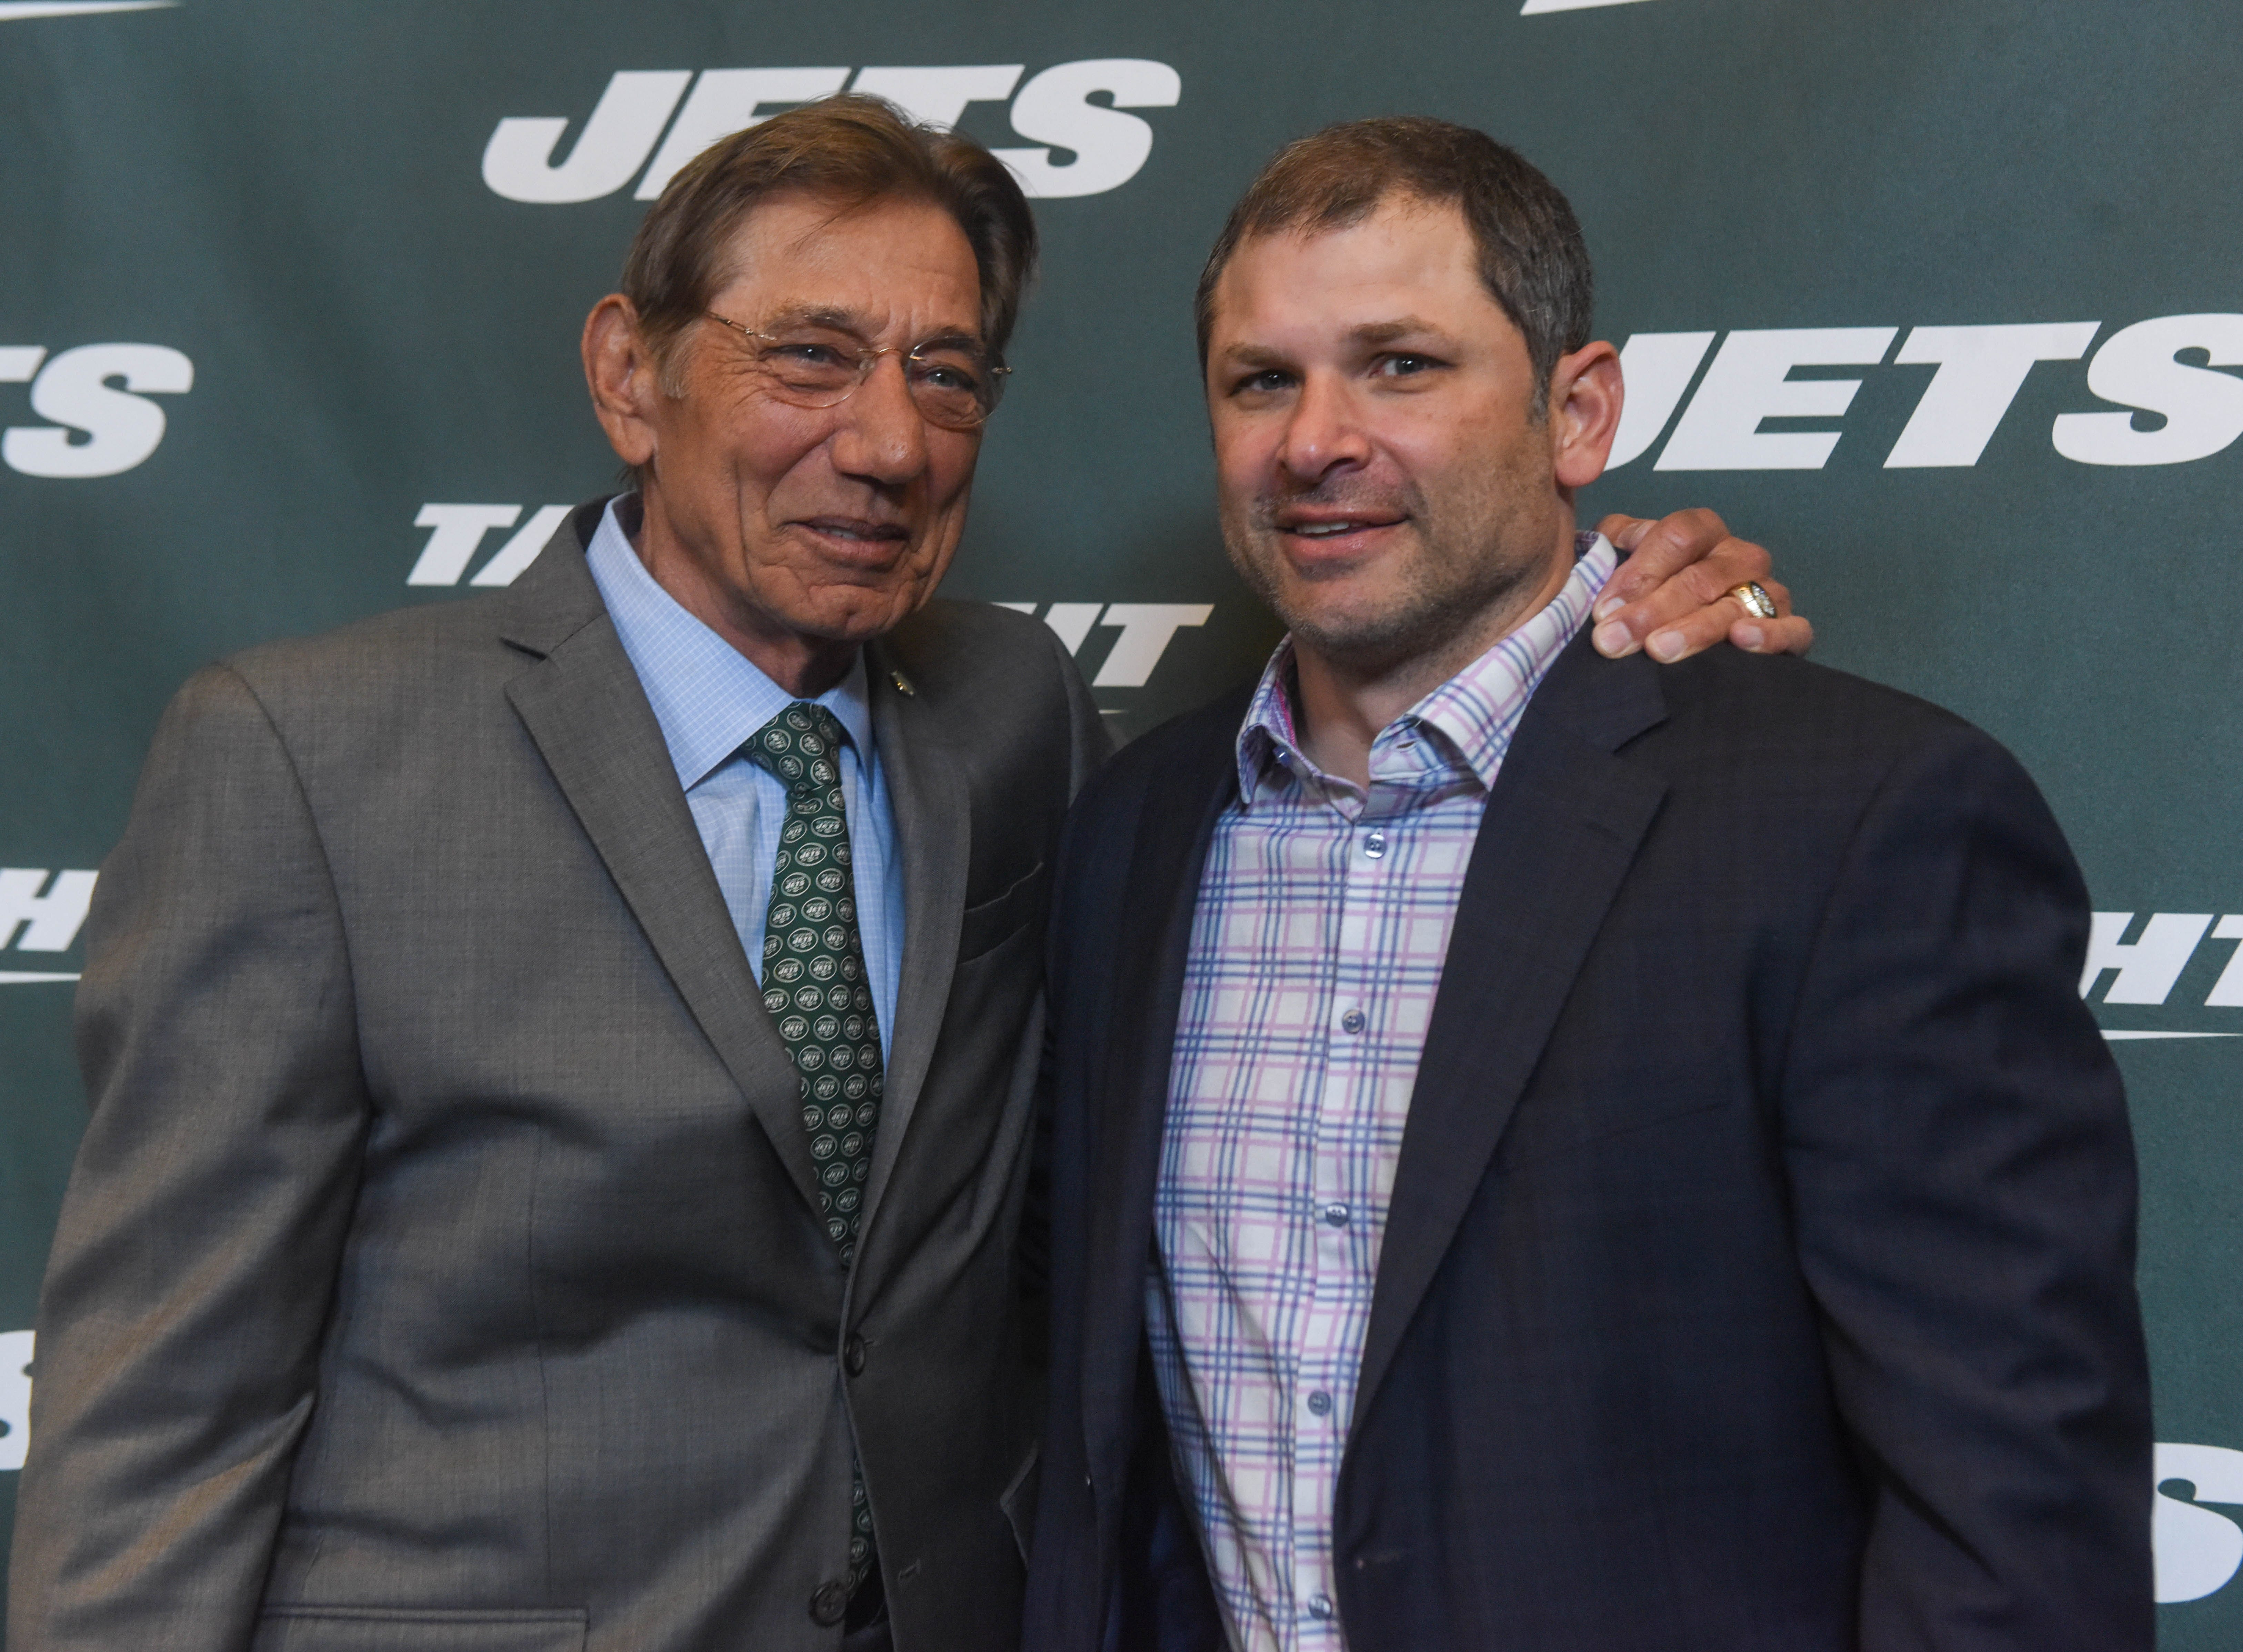 Joe Namath (NY Jets) and Wayne Chrebet (NY Jets). The NY Jets unveiled their new football uniforms with an event hosted by JB Smoove at Gotham Hall in New York. 04/05/2019